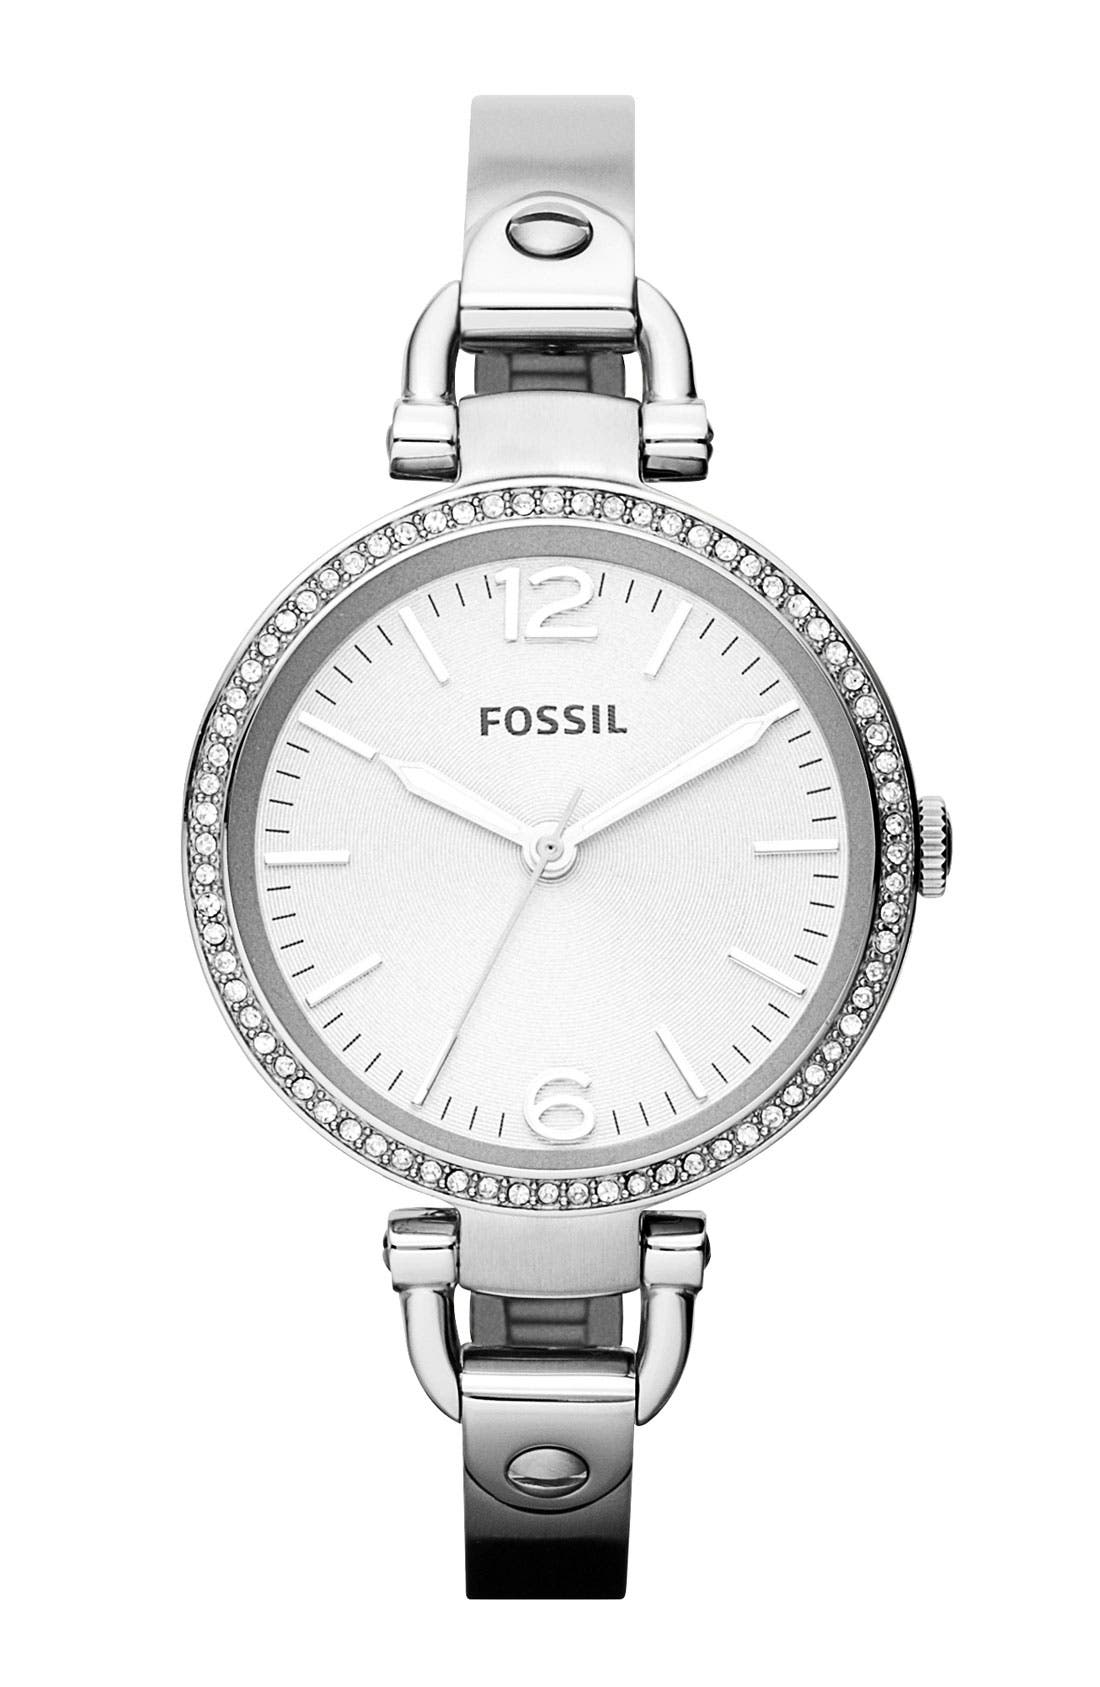 Main Image - Fossil 'Georgia' Crystal Bezel Watch, 32mm